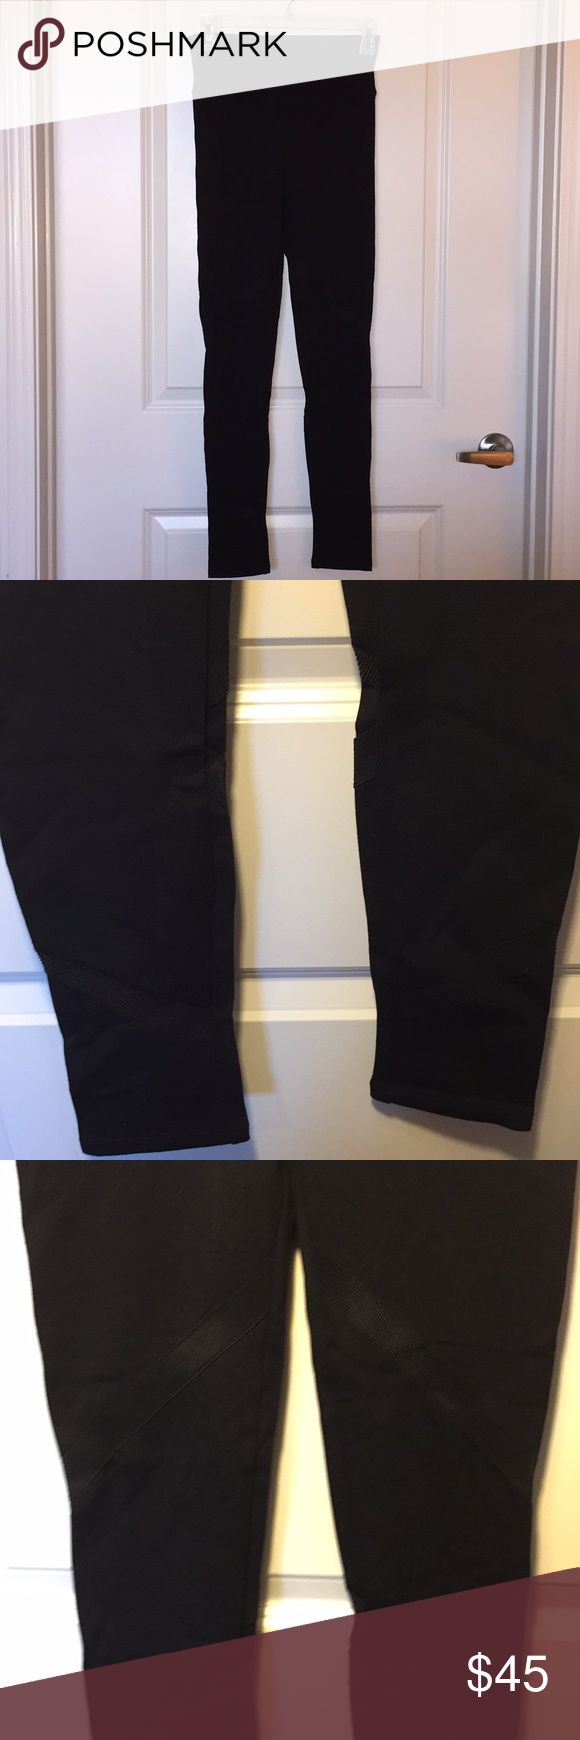 Spanx leggings Spanx leggings never released in stores! Never worn, black, size medium. Cute ribbed fabric detail  around each leg. Would look great with a cute top or with lounge wear. SPANX Pants Leggings